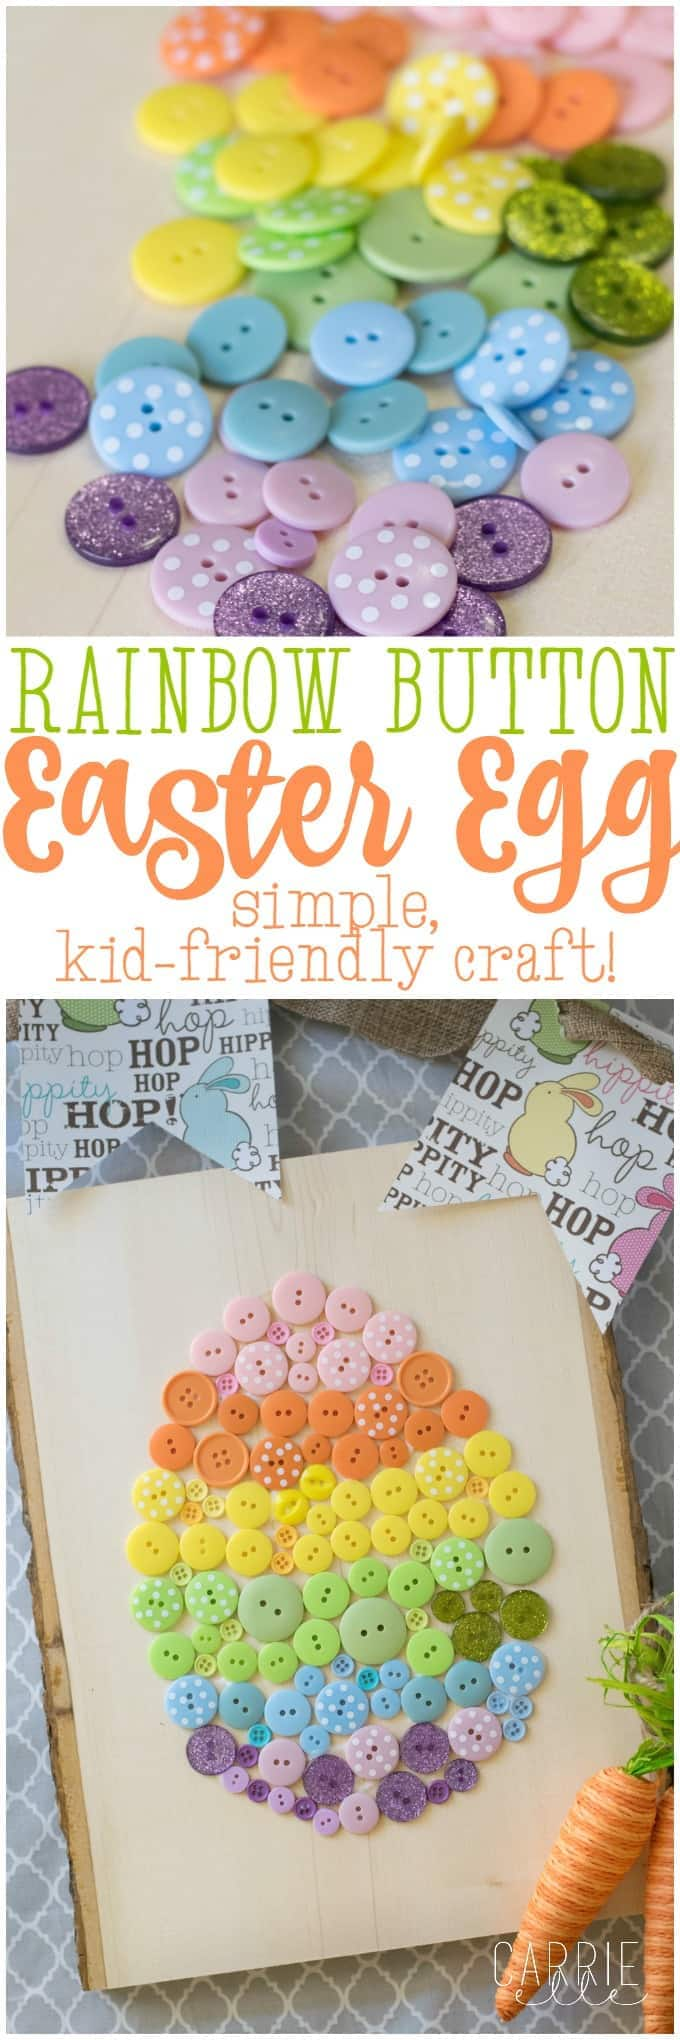 easter craft ideas for toddlers easy easter craft button easter egg carrie 6490